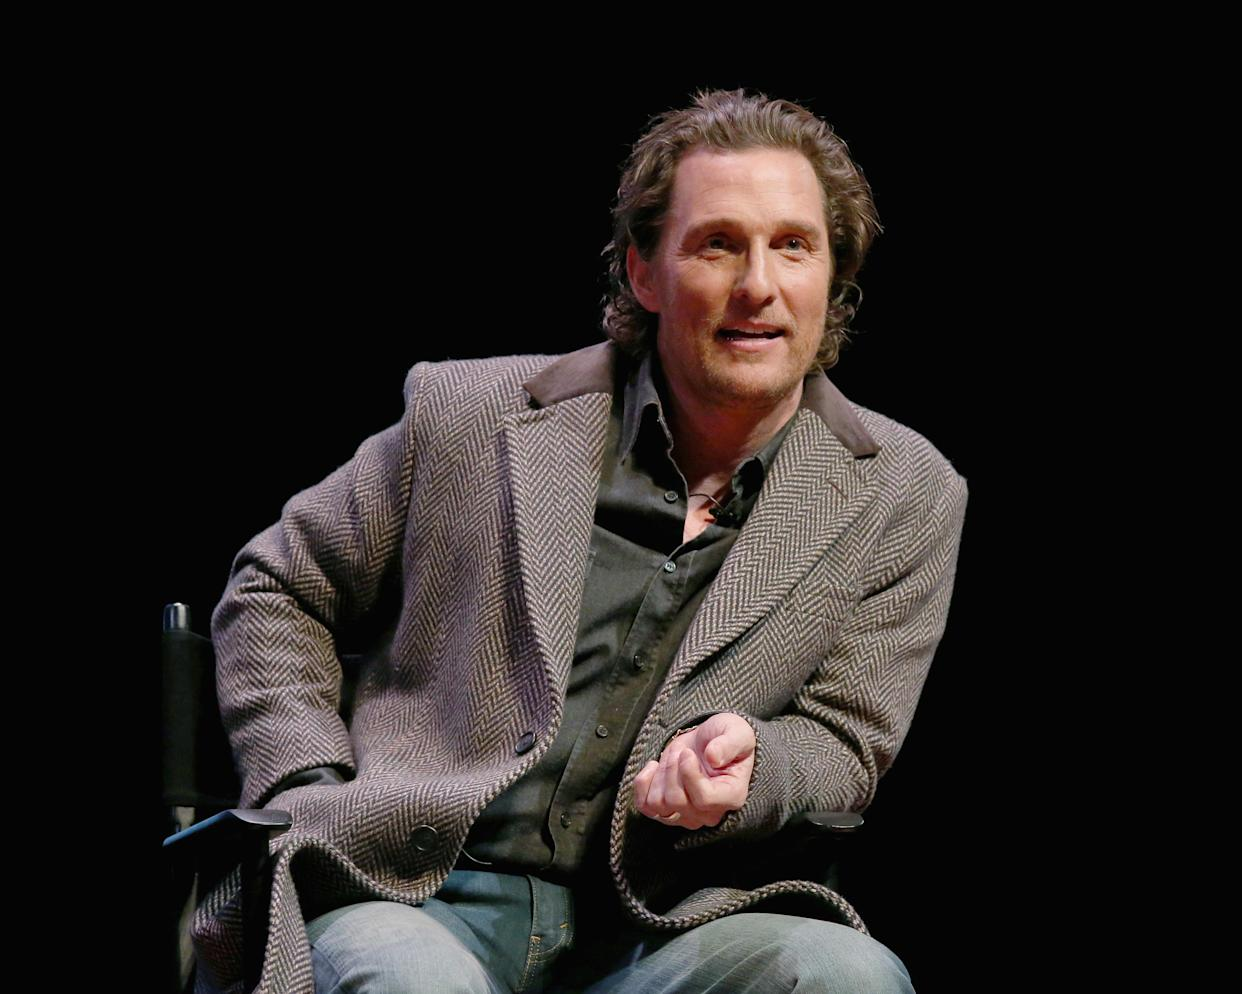 AUSTIN, TEXAS - JANUARY 21:  Matthew McConaughey participates in a Q&A after a special screening of his new film